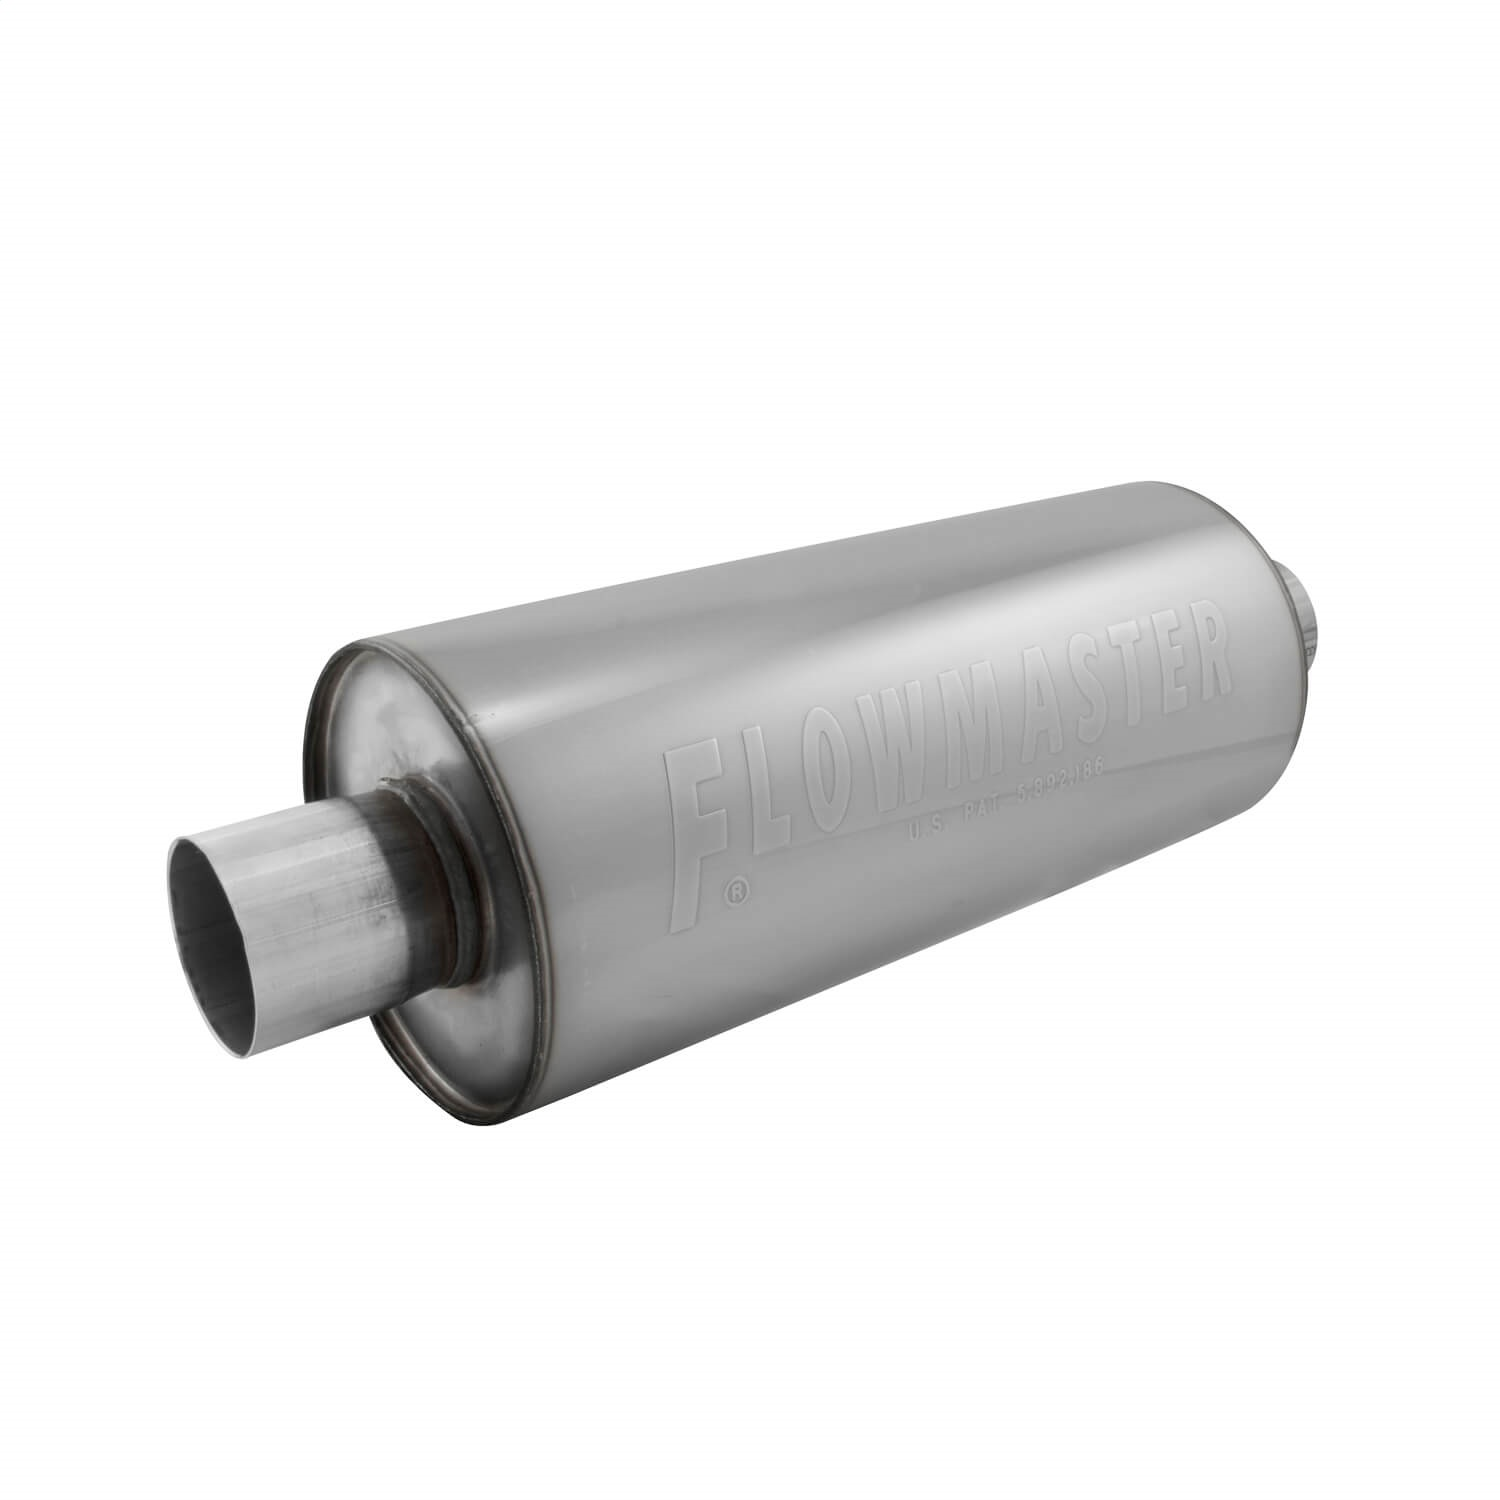 Flowmaster 12014310 dBX Muffler Fits 00-13 500 Boxster Cooper Fusion